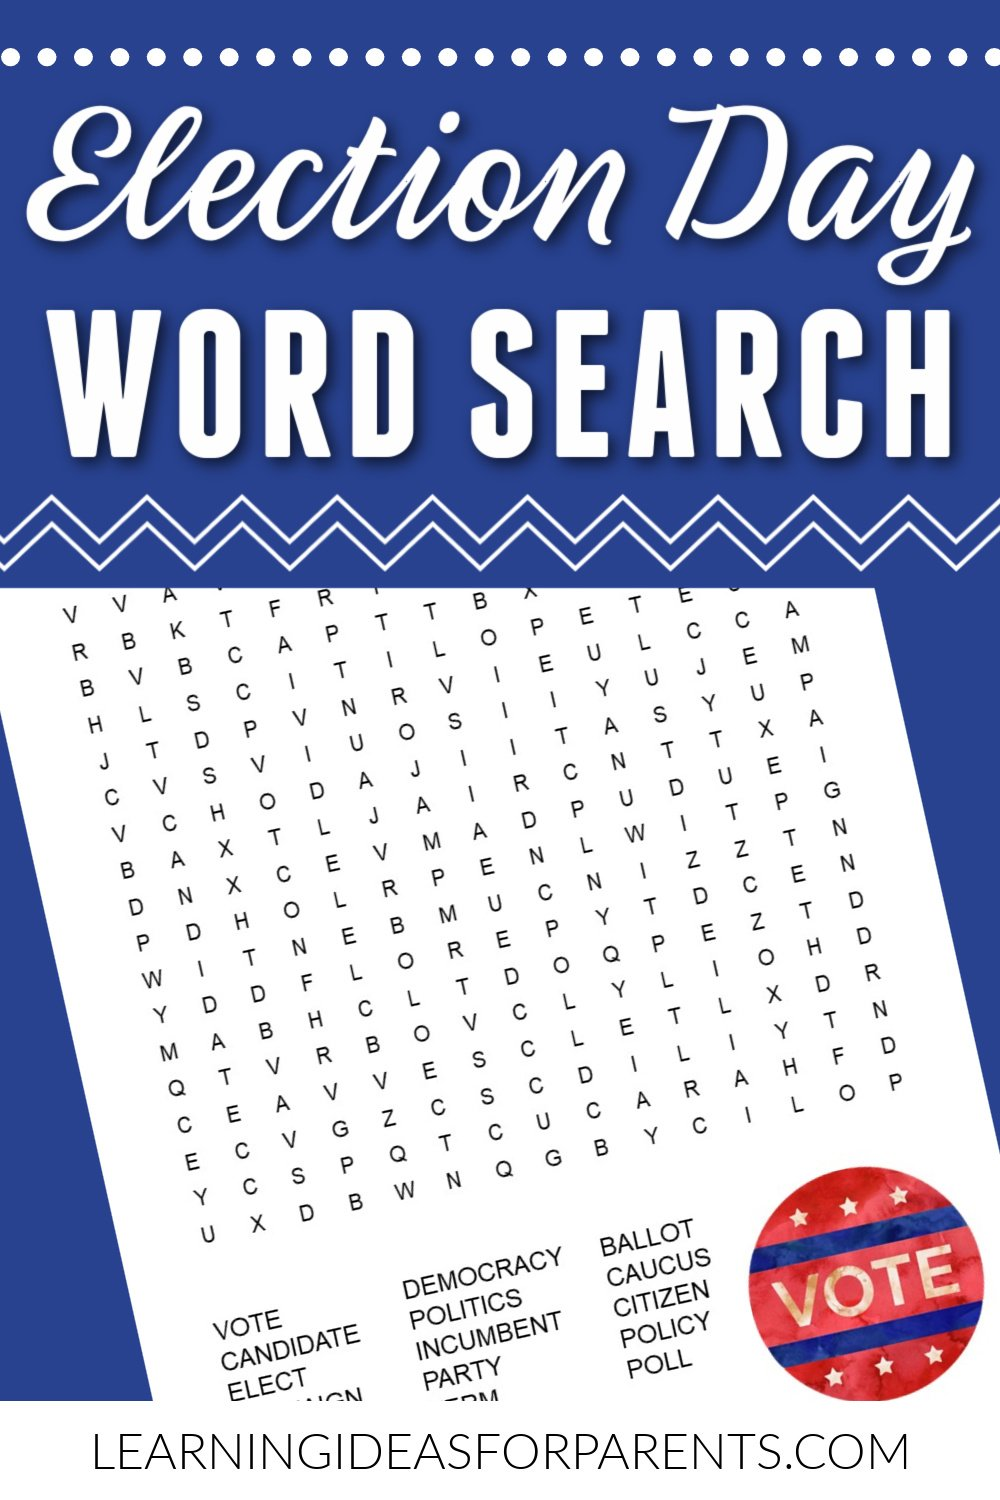 Free printable Election Day word search for kids.